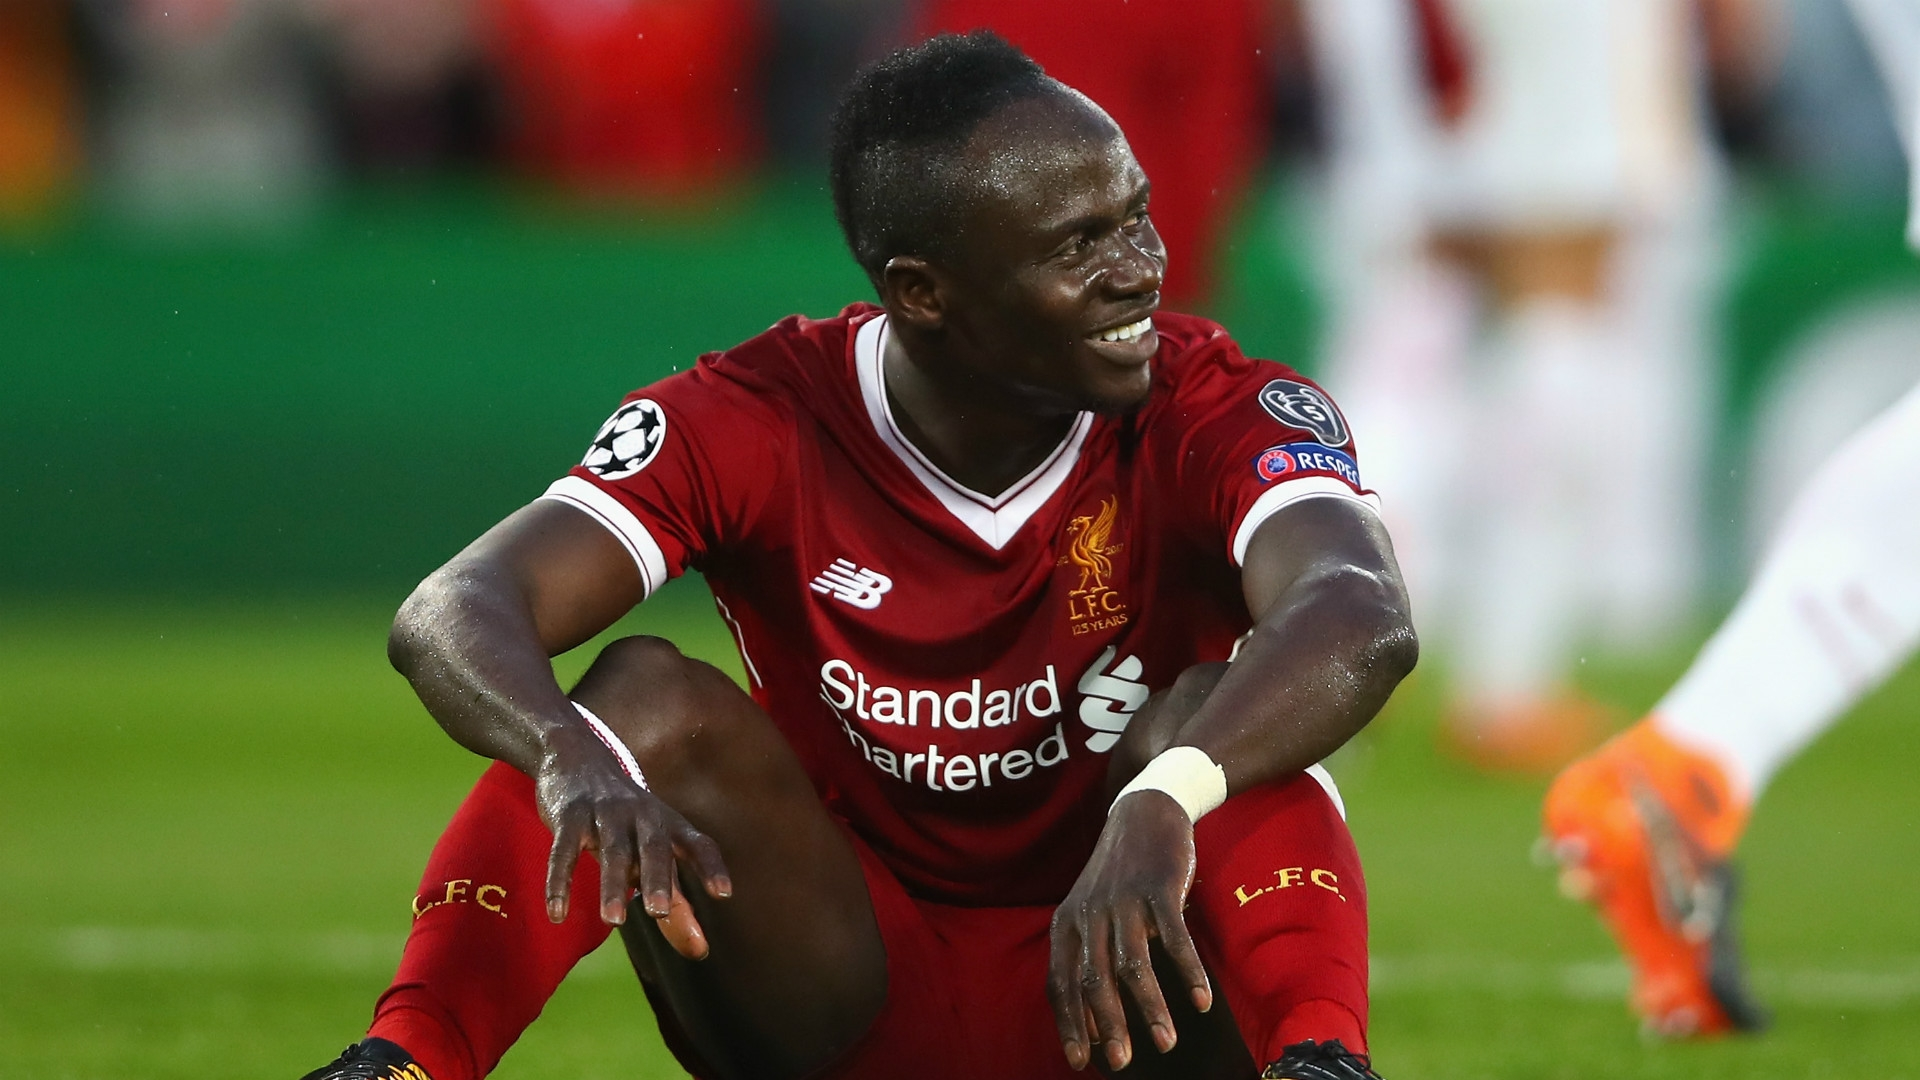 Sadio Mane - Liverpool, Senegal